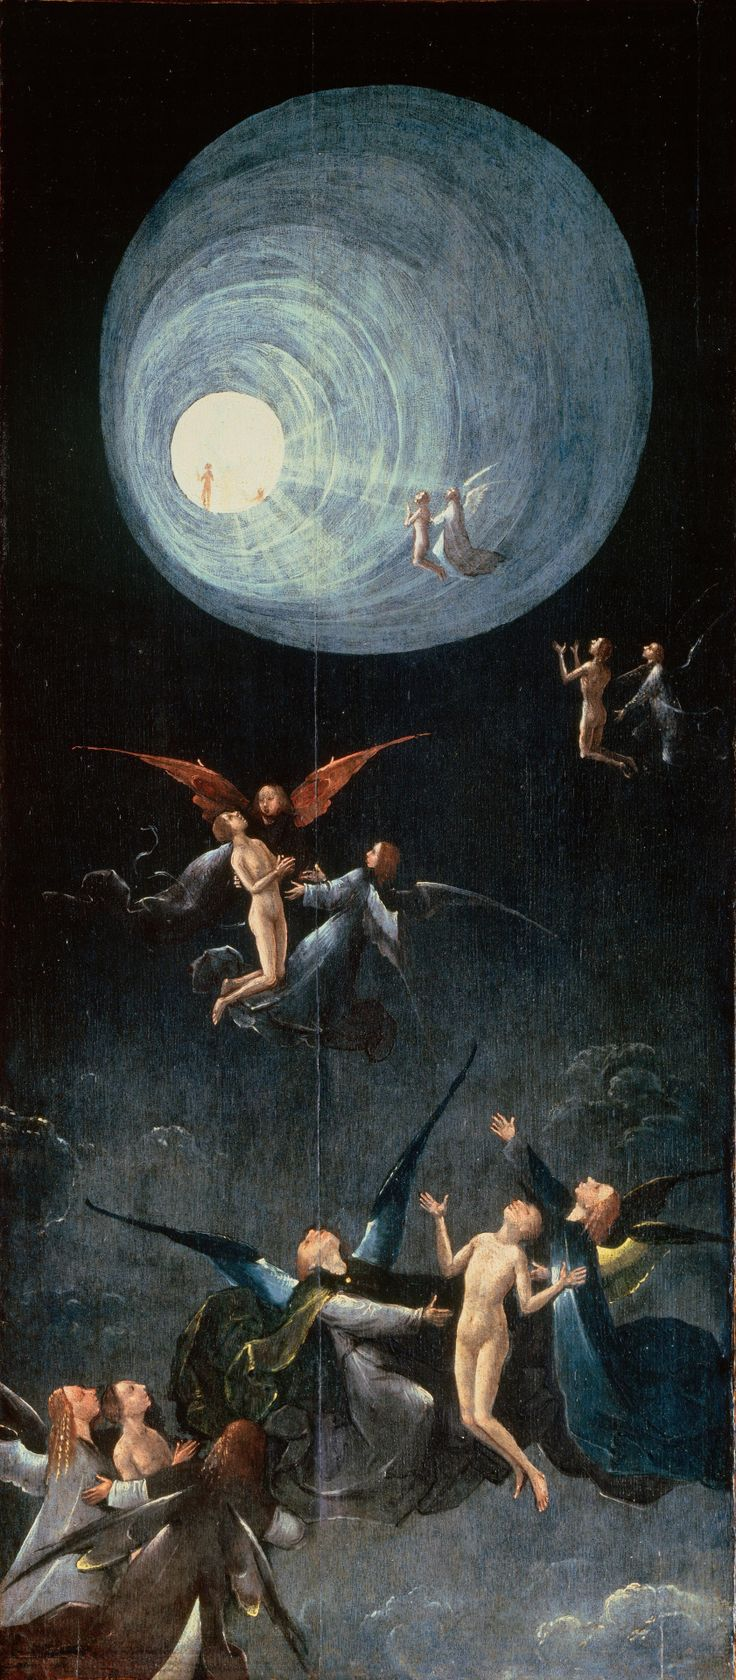 Ascent of the Blessed Hieronymus Bosch, c. 1490